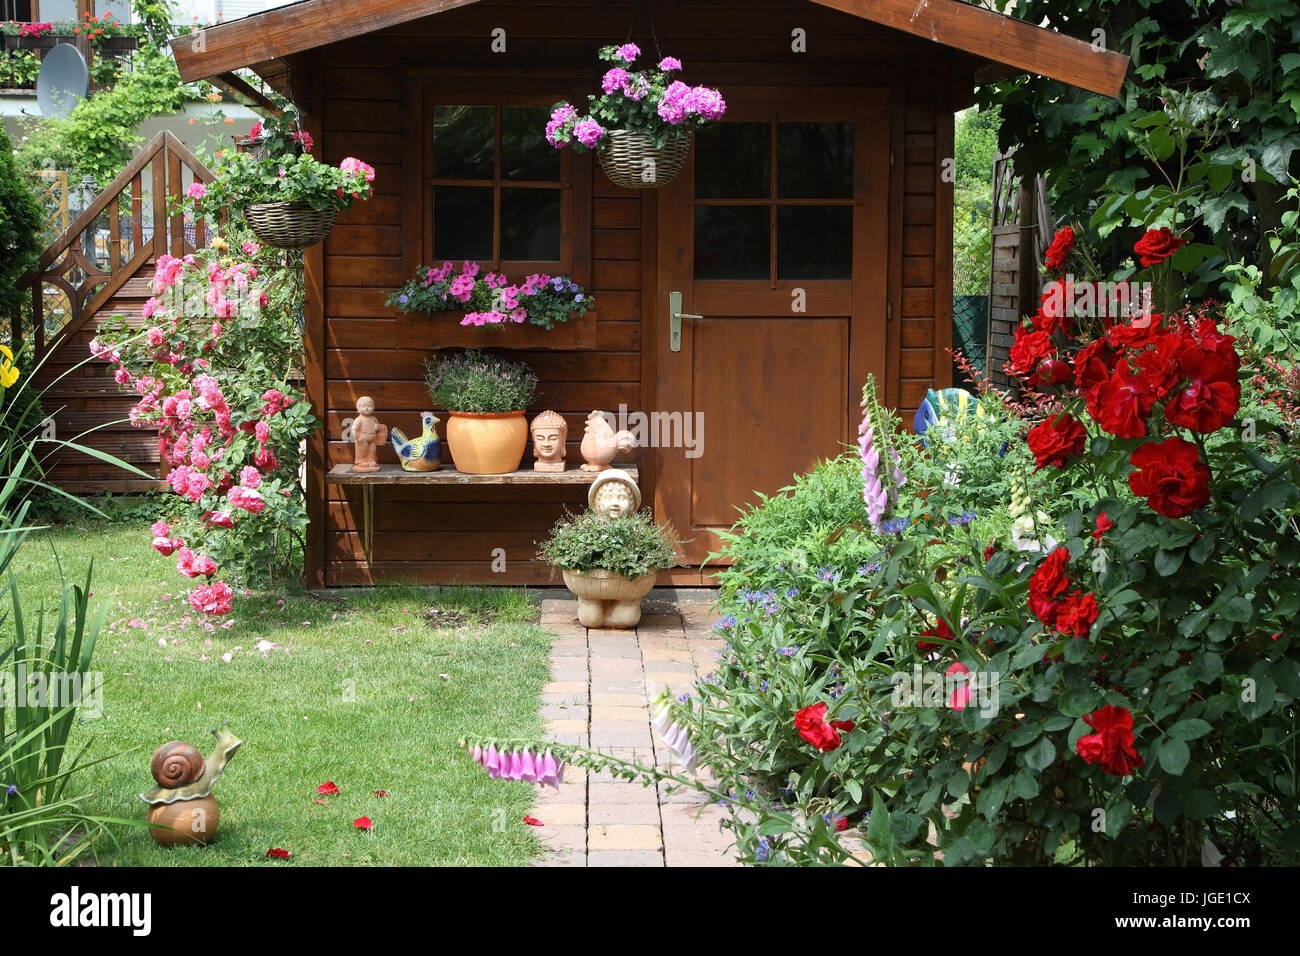 Summer House With Flowers And Garden Figures Stock Photos & Summer ...